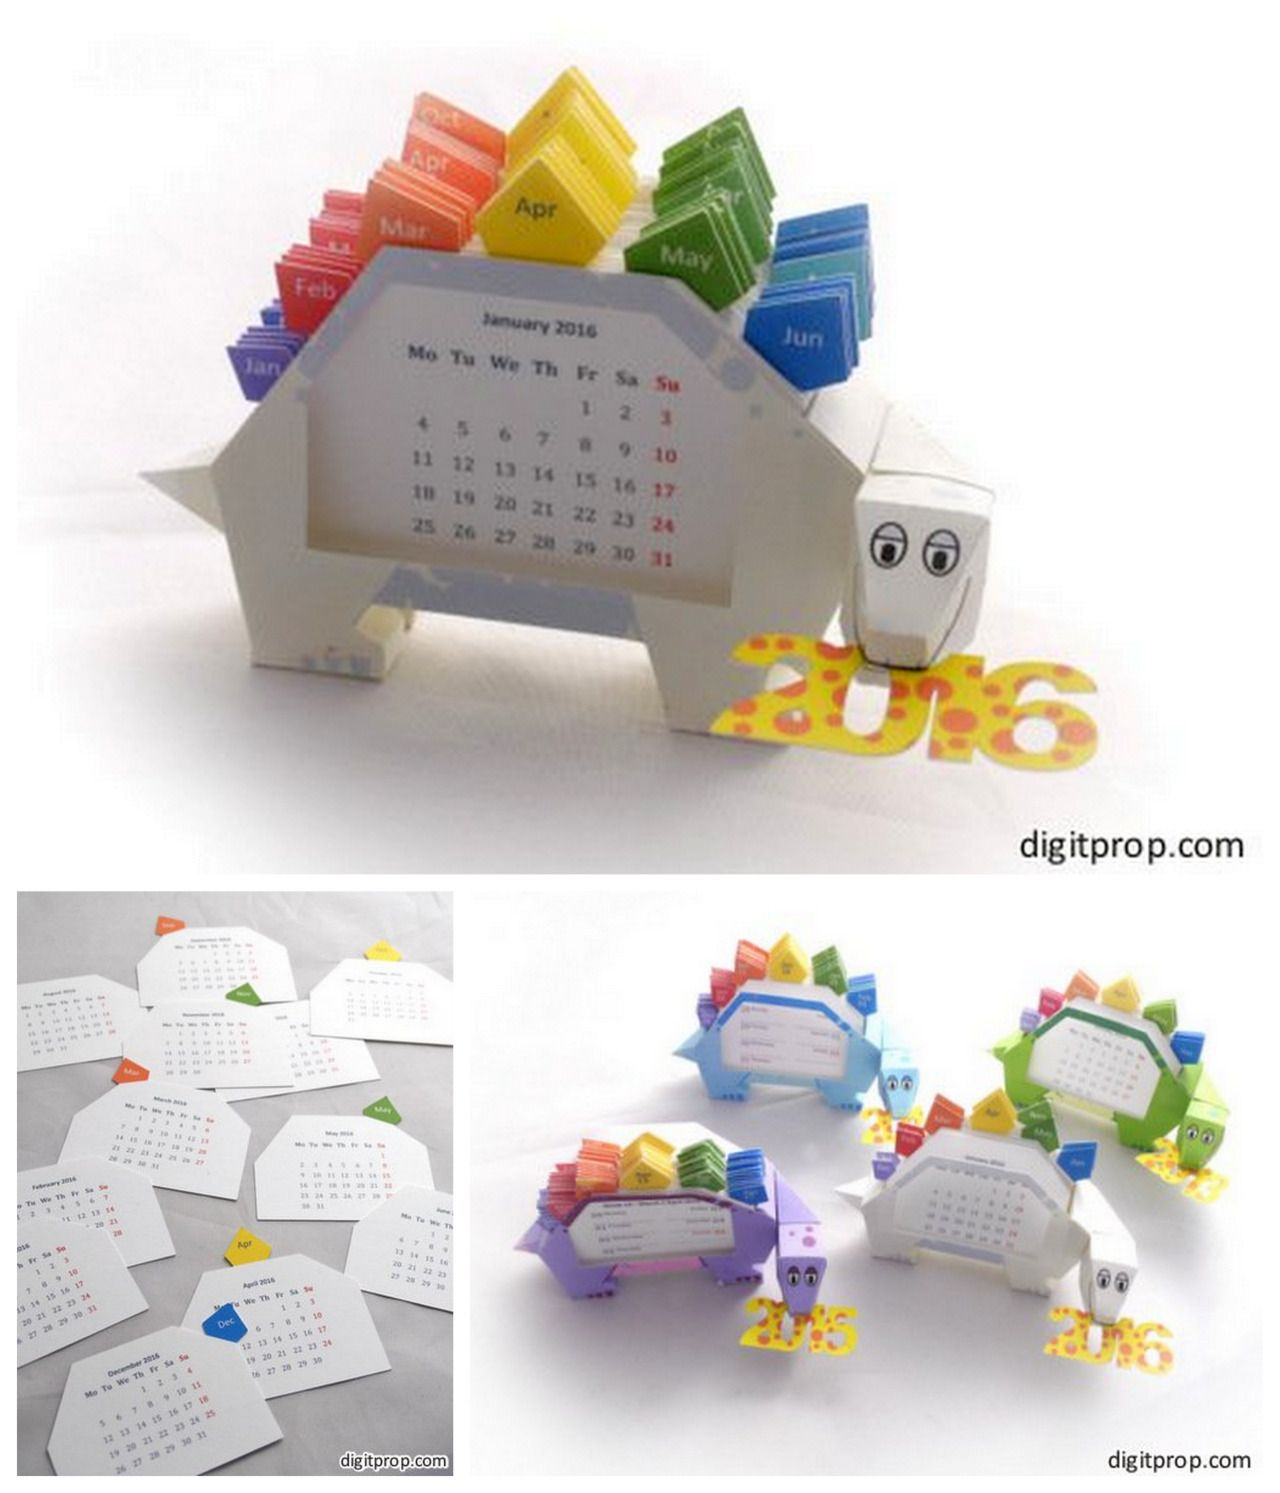 Diy 3d Dinosaur Calendar Free Printable From Digitprop Every Year Digitprop Comes Out With